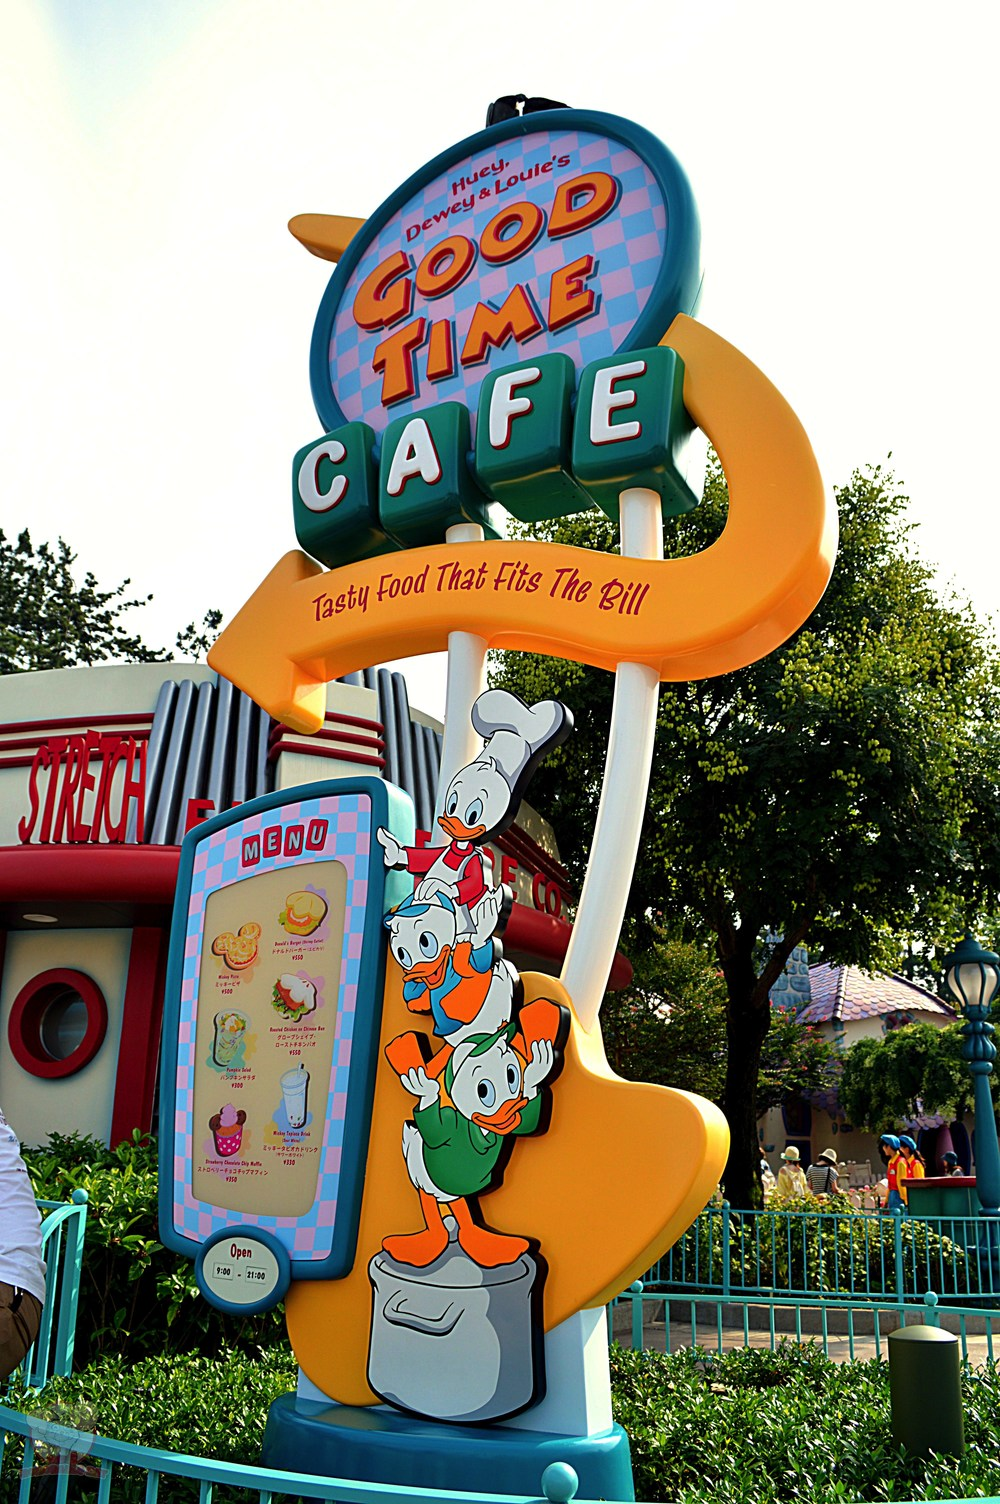 Huey, Dewey & Louie's Good Time Cafe